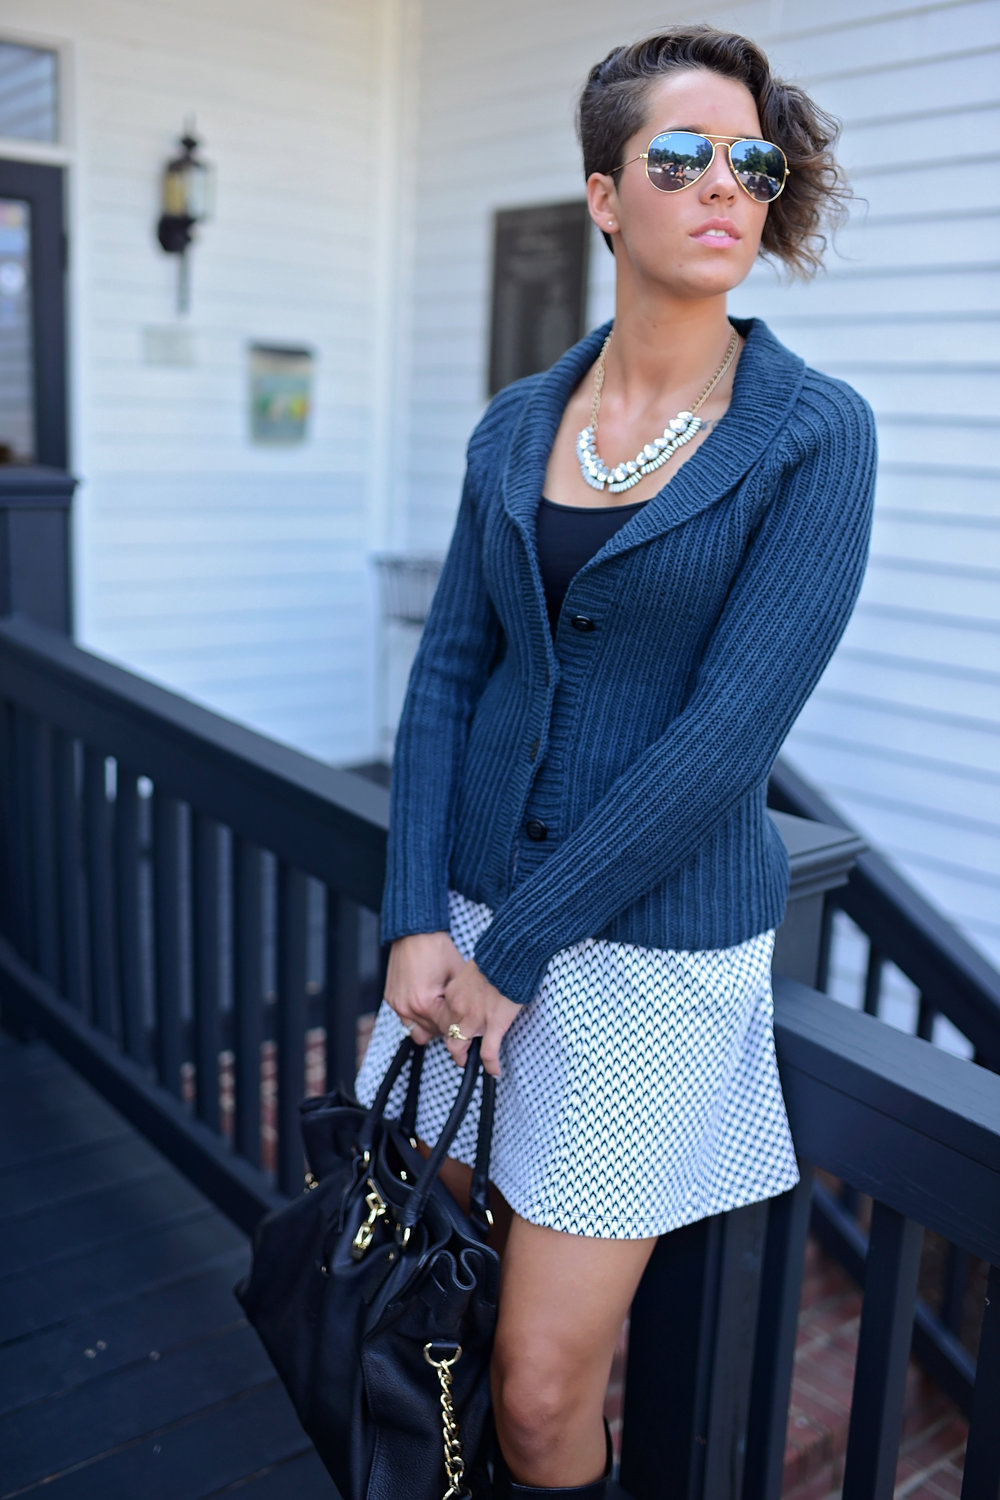 Scholar Cardigan by Kate Oates of Tot Toppers